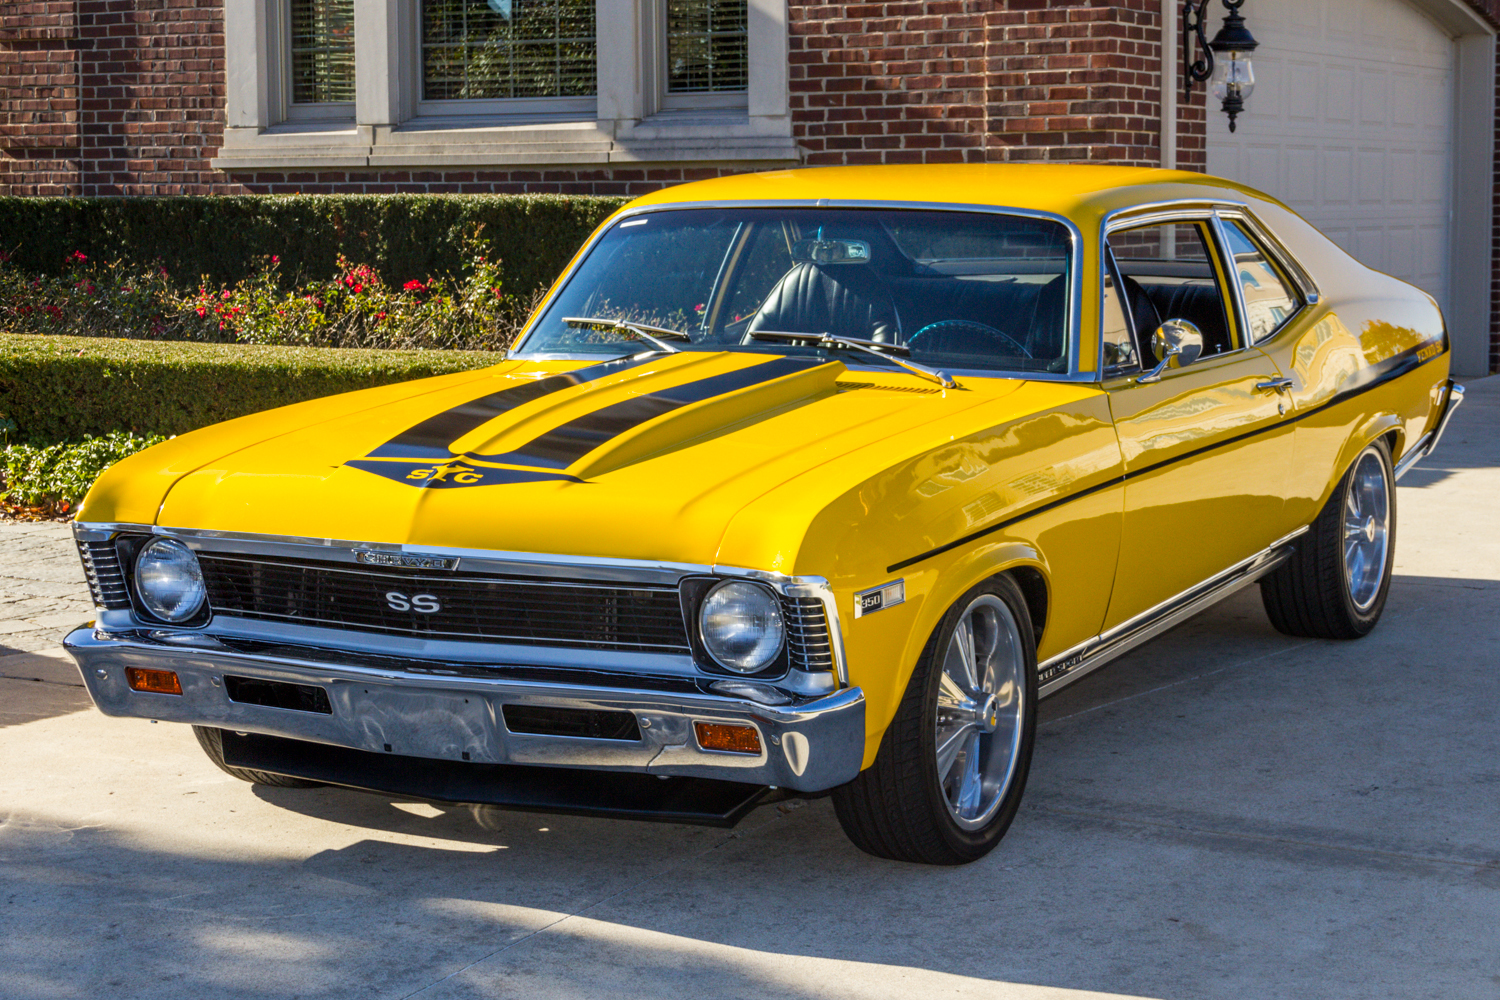 1968 Chevrolet Nova Classic Cars For Sale Michigan Muscle Old Chevy Ss